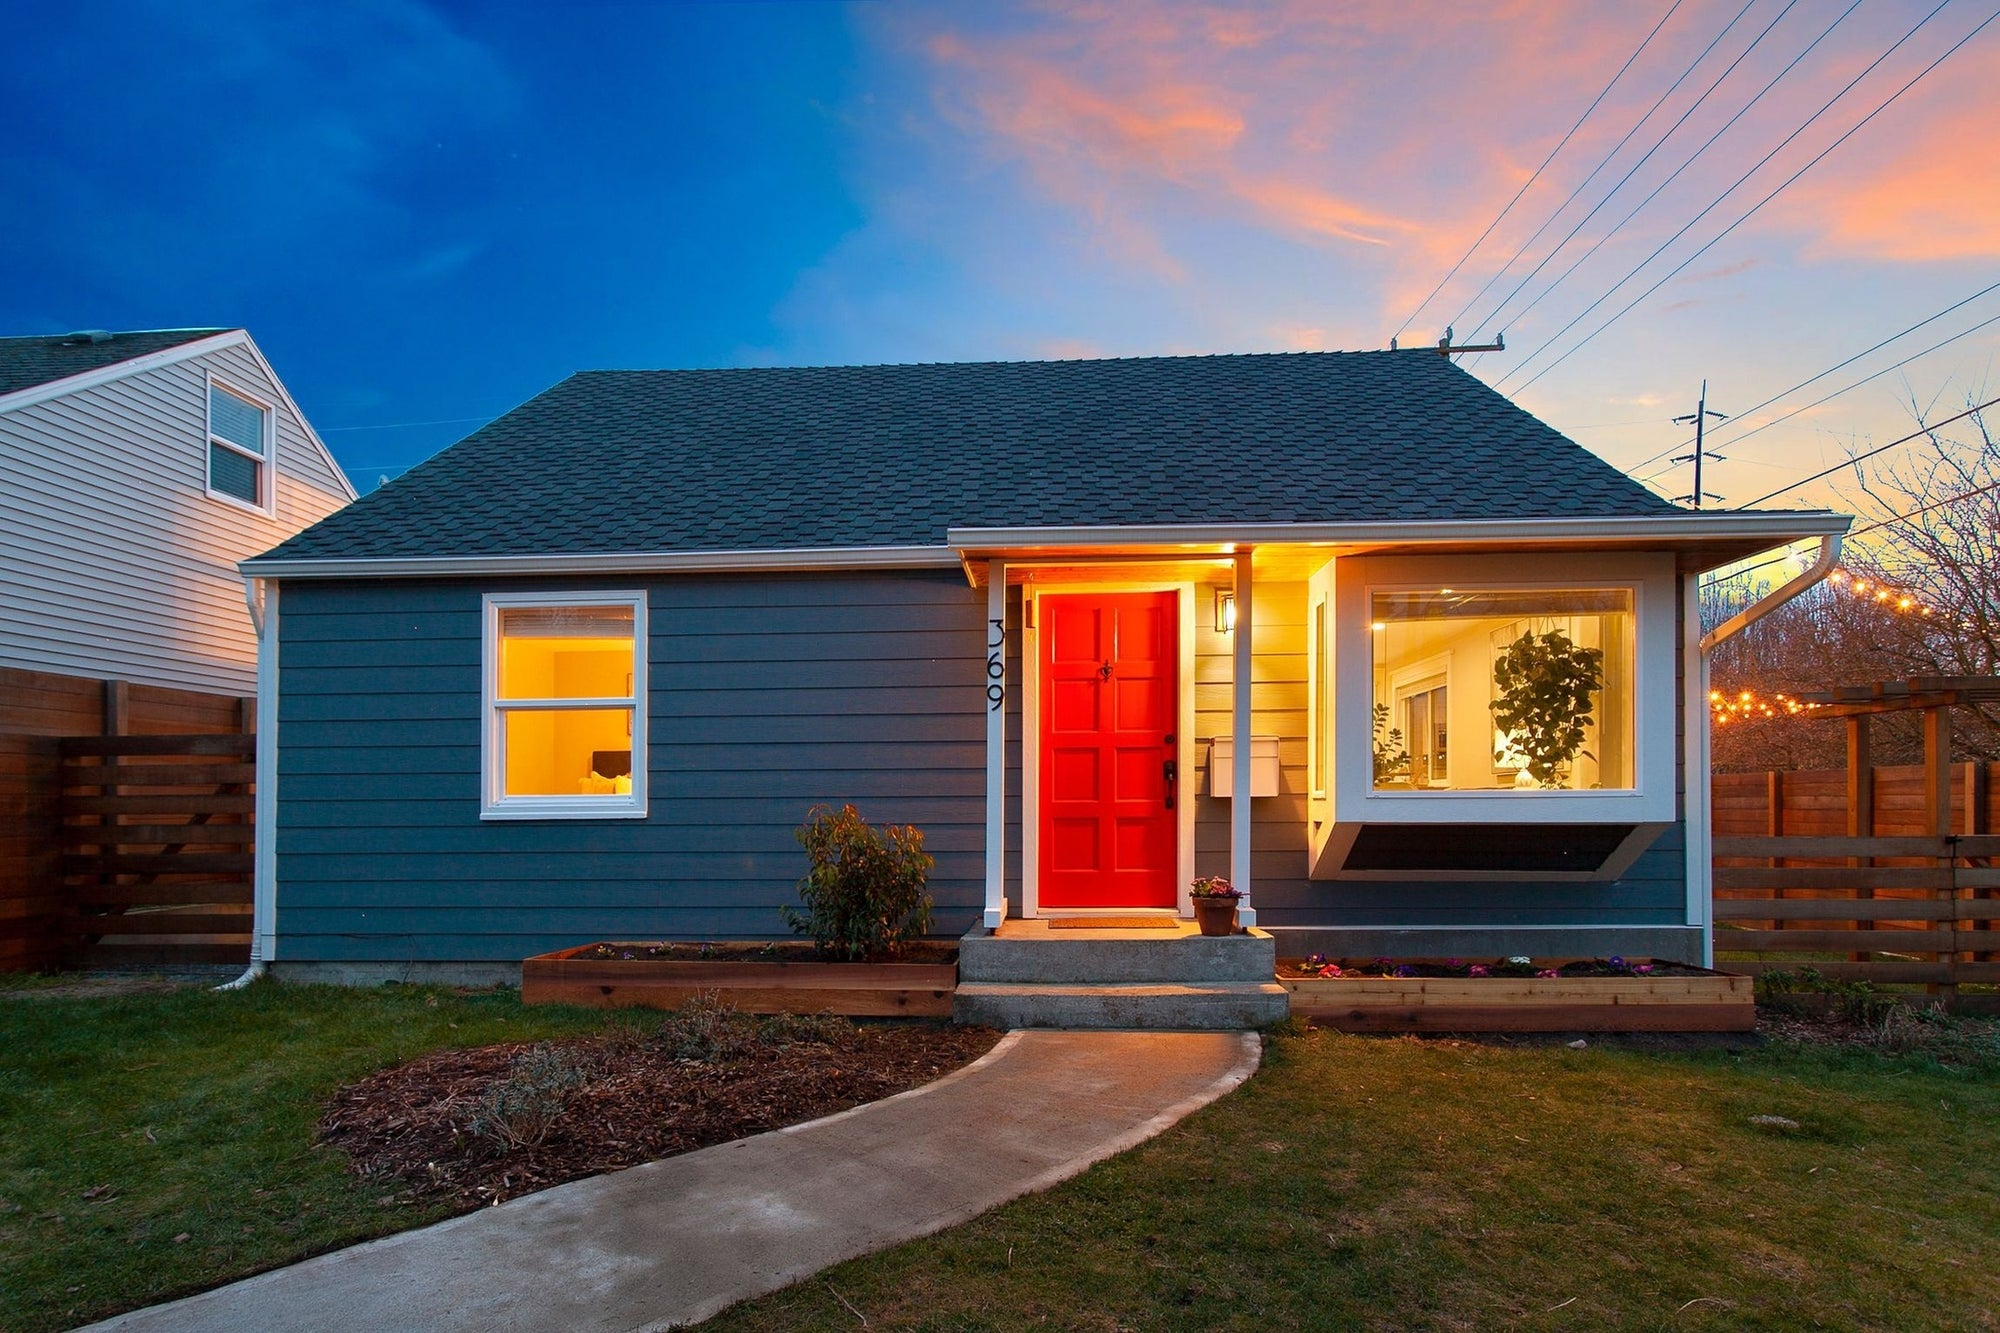 Check out the recent Redfin article we were featured in:  Expert Advice for Picking the Best Exterior Paint Colors for Your Home